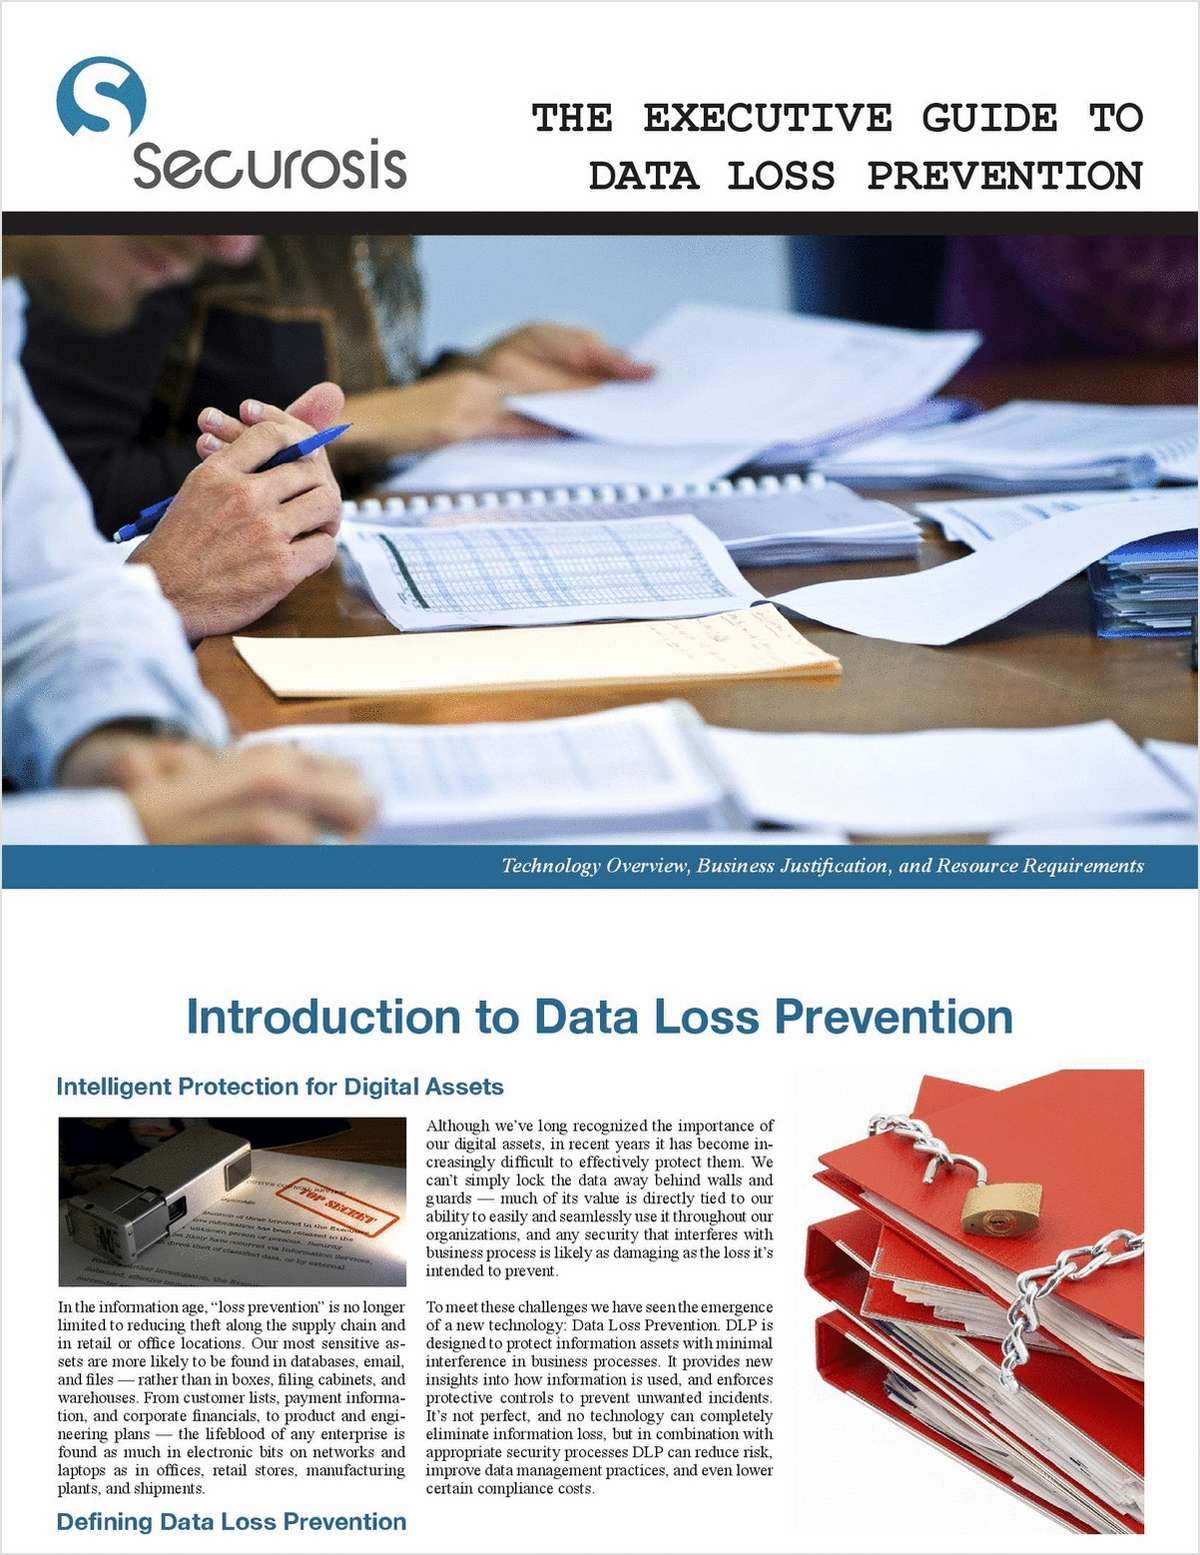 The Executive Guide to Data Loss Prevention